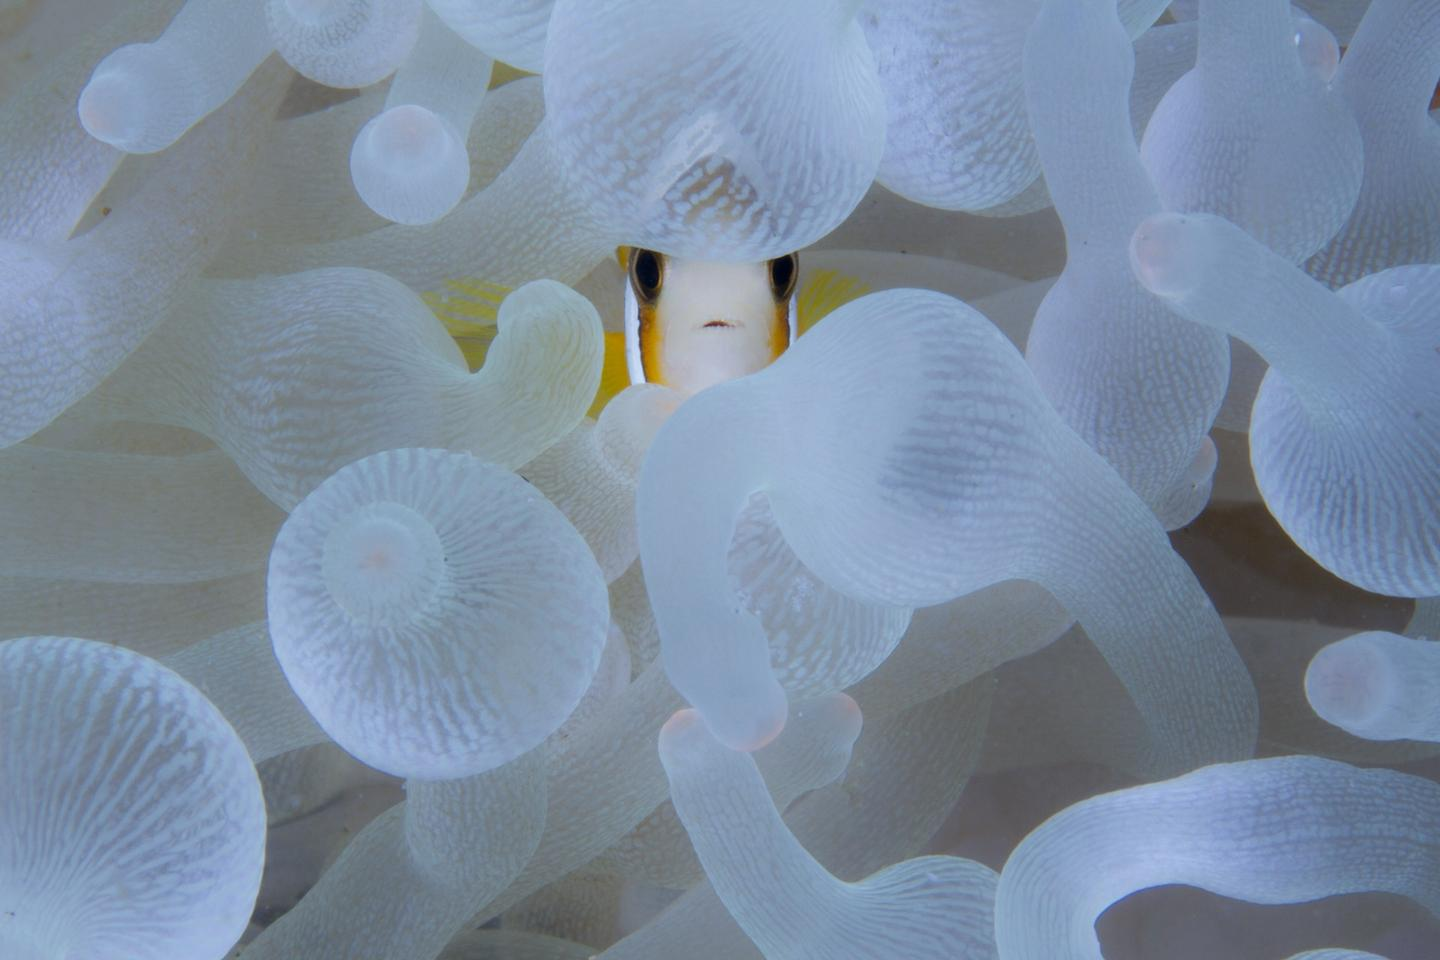 Special Mention - Wildscape and Animals in Habitat. A Nemo, An Anemone, Indonesia